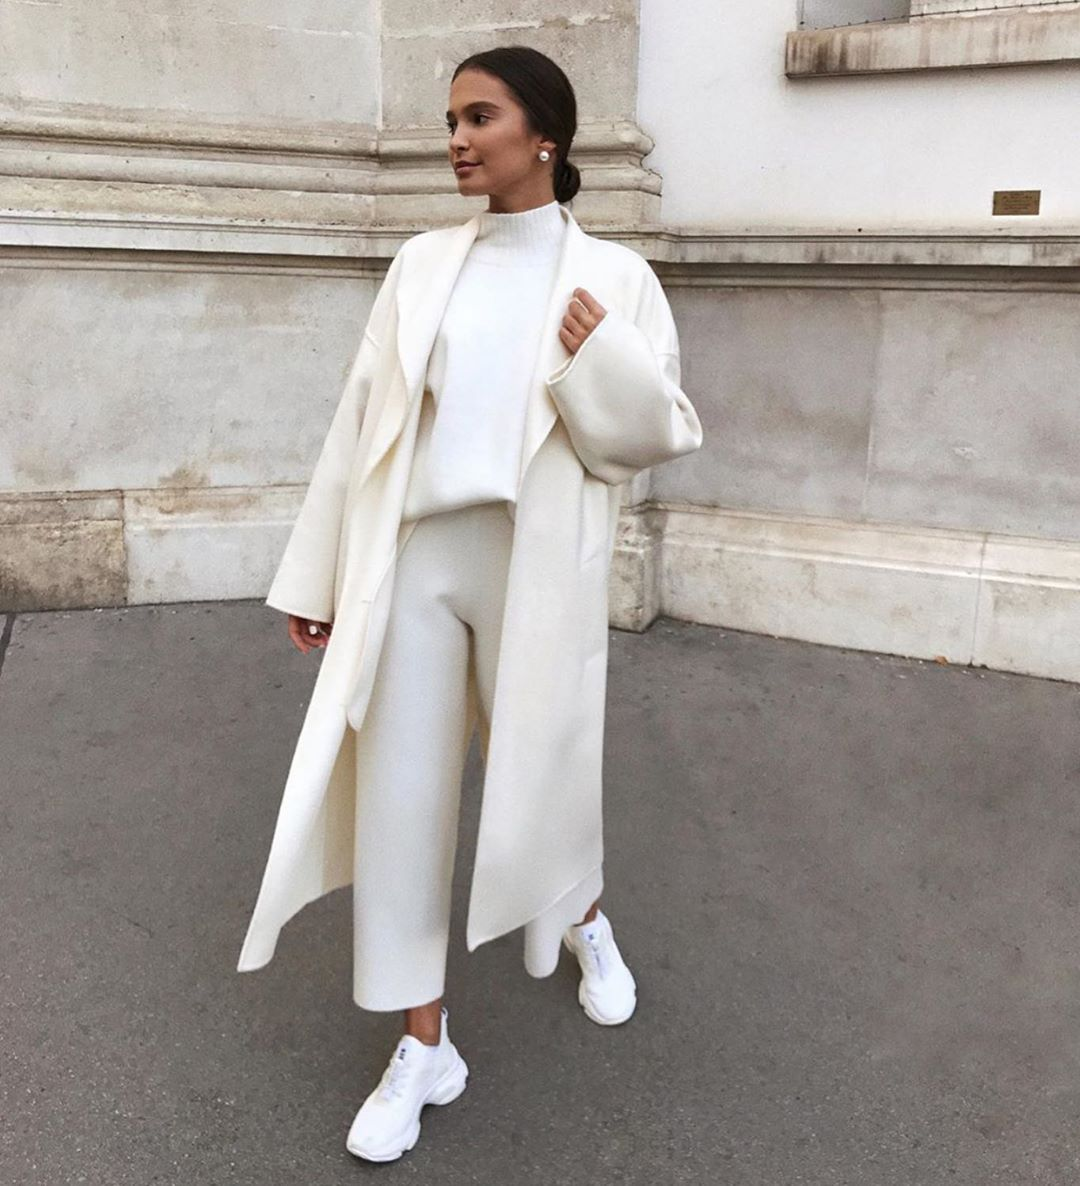 White Coats Are a Cold Weather Wardrobe Must